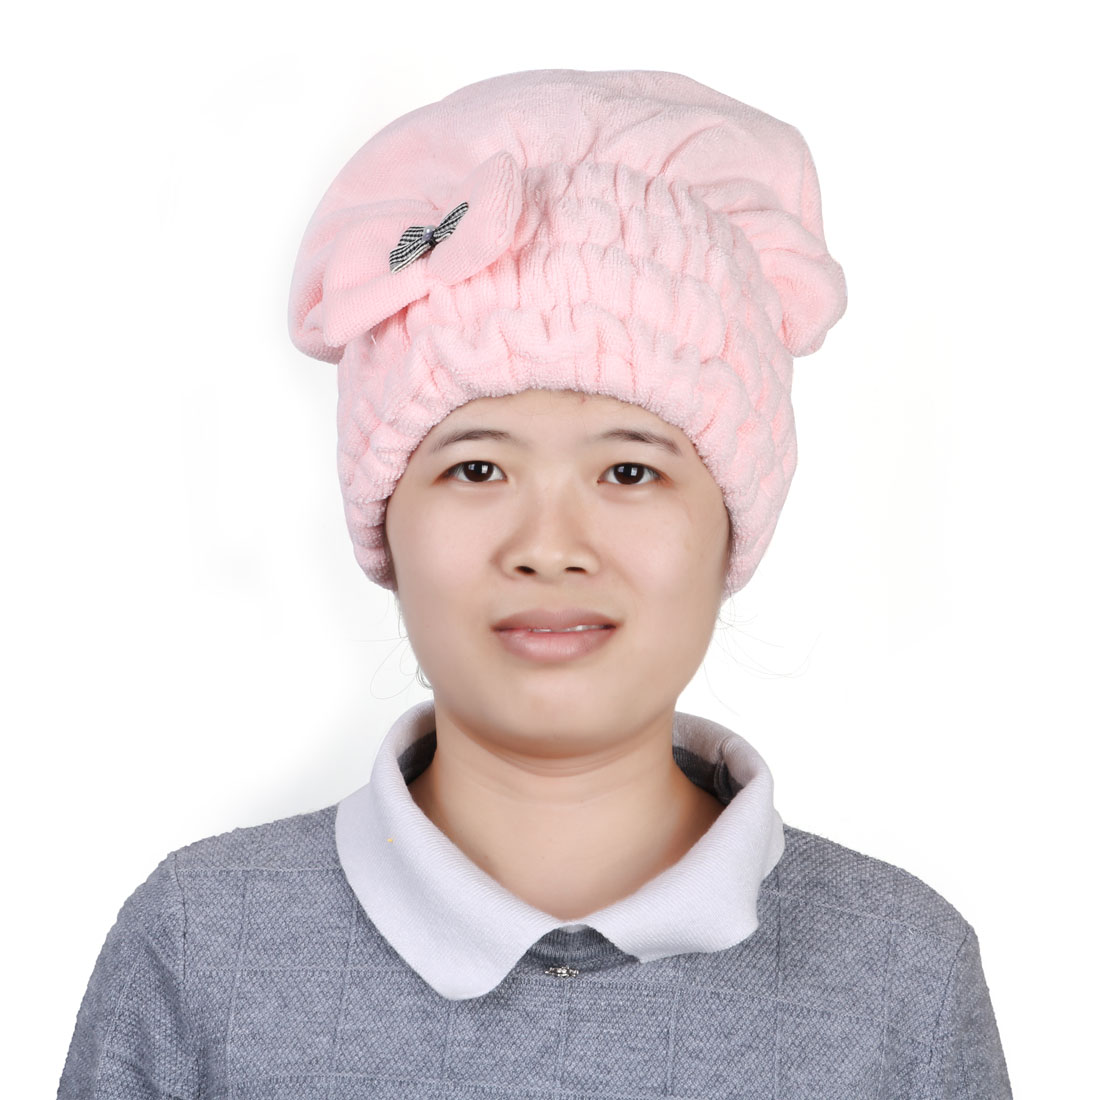 Shower Microfiber Elastic Bowknot Decor Water Absorbent Dry Hair Cap Hat Pink